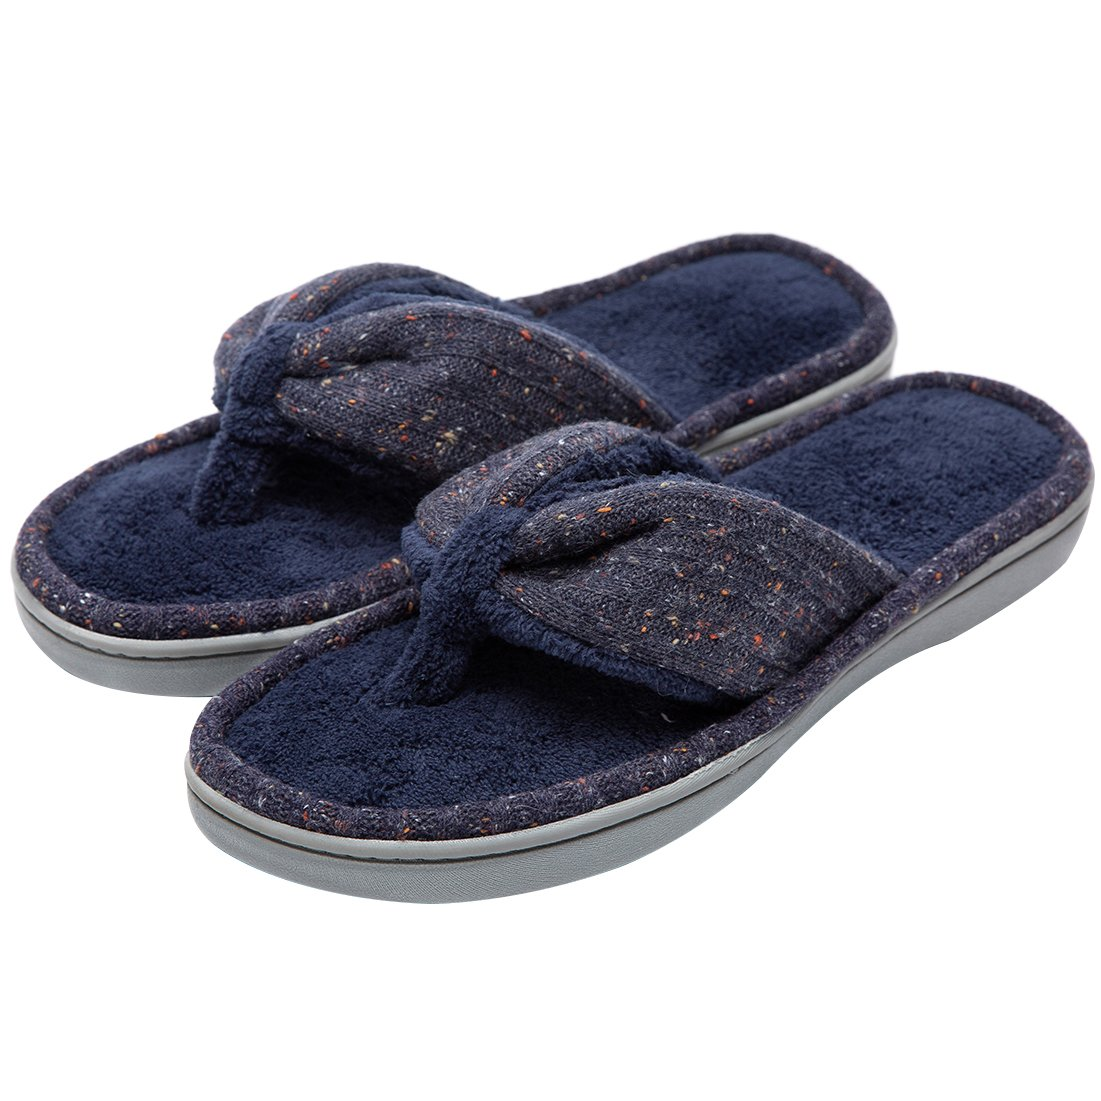 Women's Soft & Comfy Knitted Plush Fleece Lining Memory Foam Spa Thong Flip Flops House Slippers (Large/9-10 B(M) US, Navy Blue) by HomeTop (Image #1)